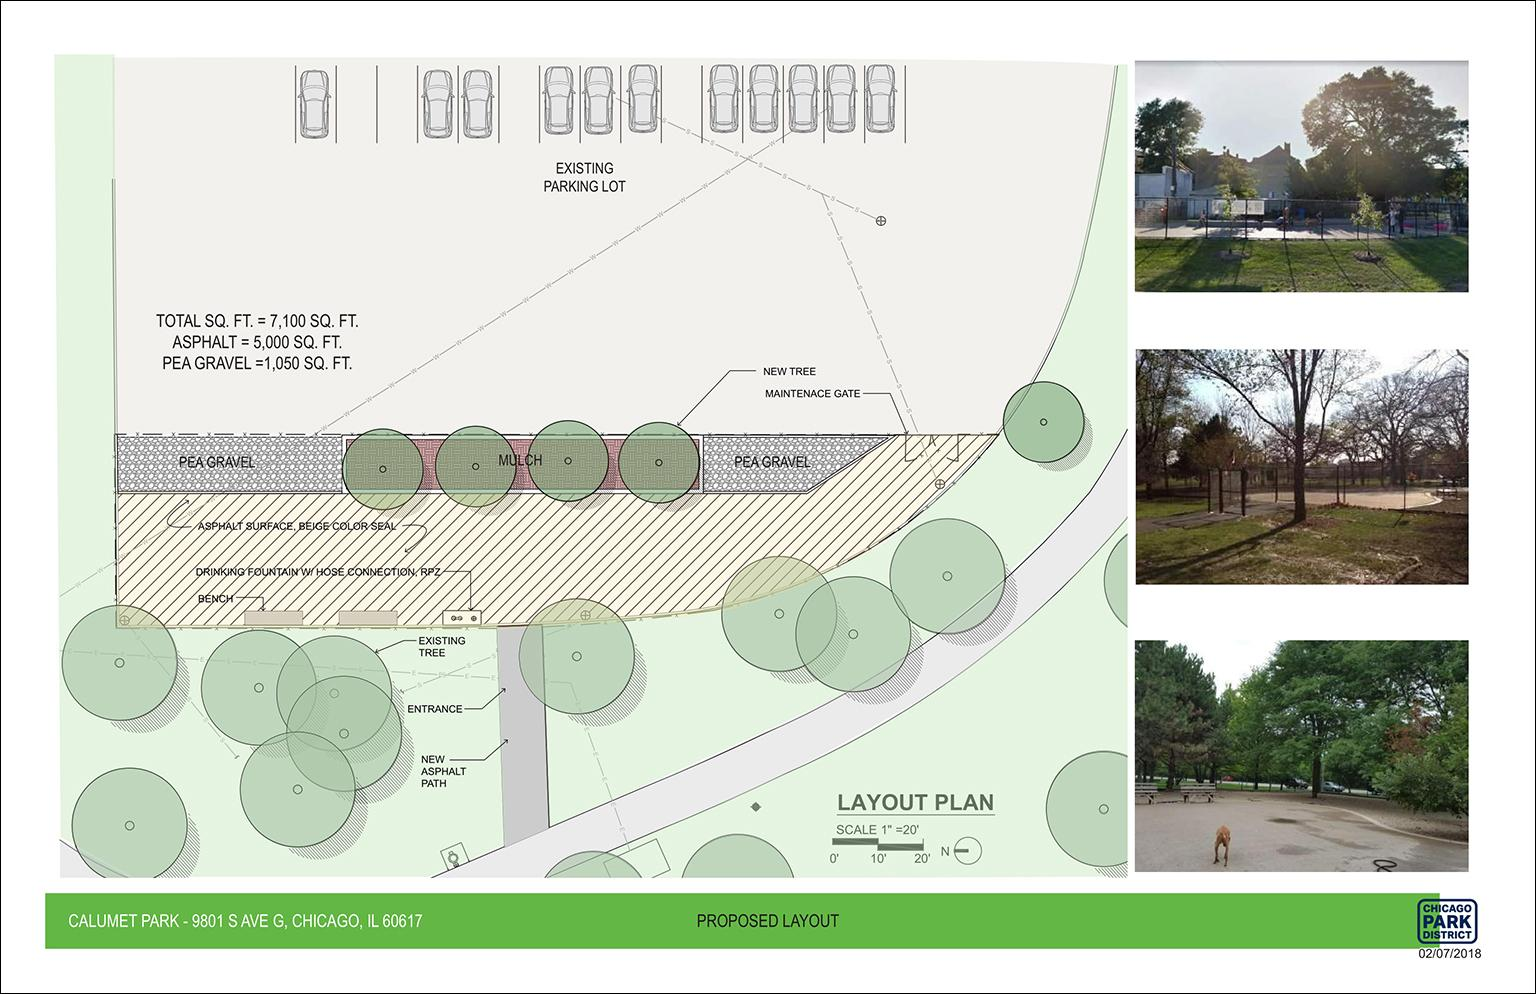 The new dog park at Calumet Park will be surfaced with asphalt and pea gravel and will feature trees, benches and a drinking fountain. (Chicago Park District)